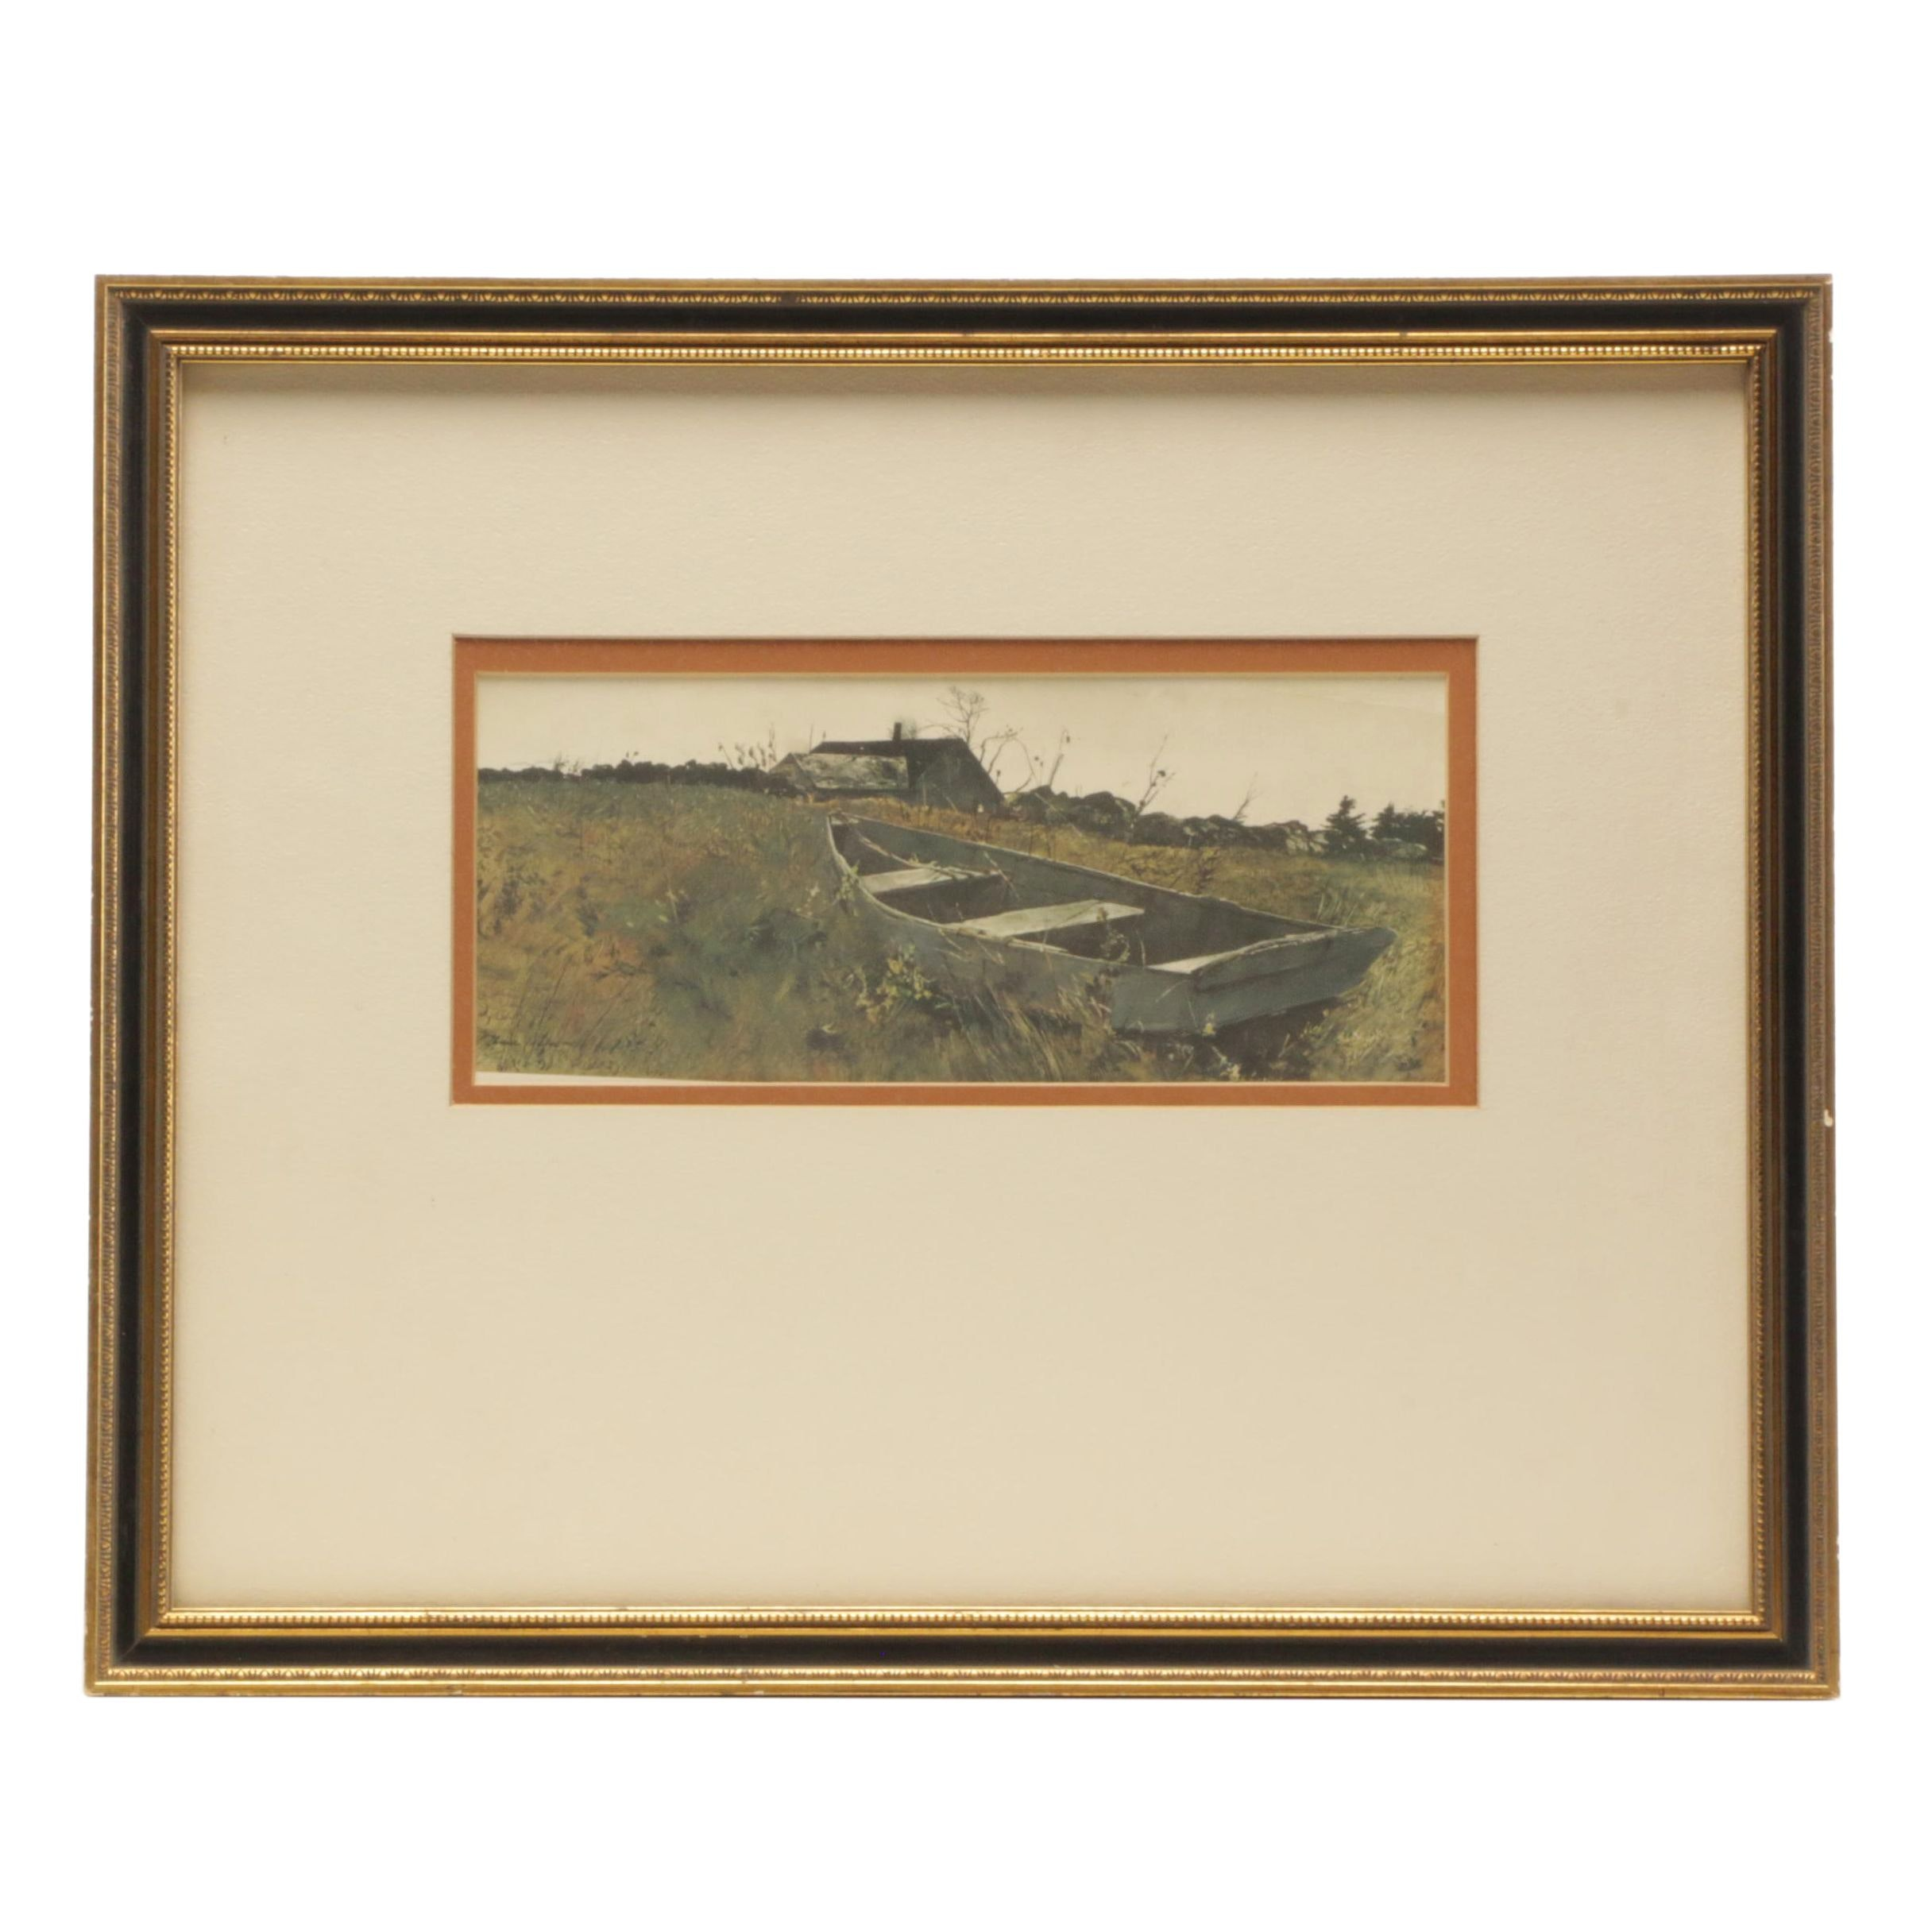 """Offset Lithographic Reproduction after Andrew Wyeth """"Teel's Island"""""""